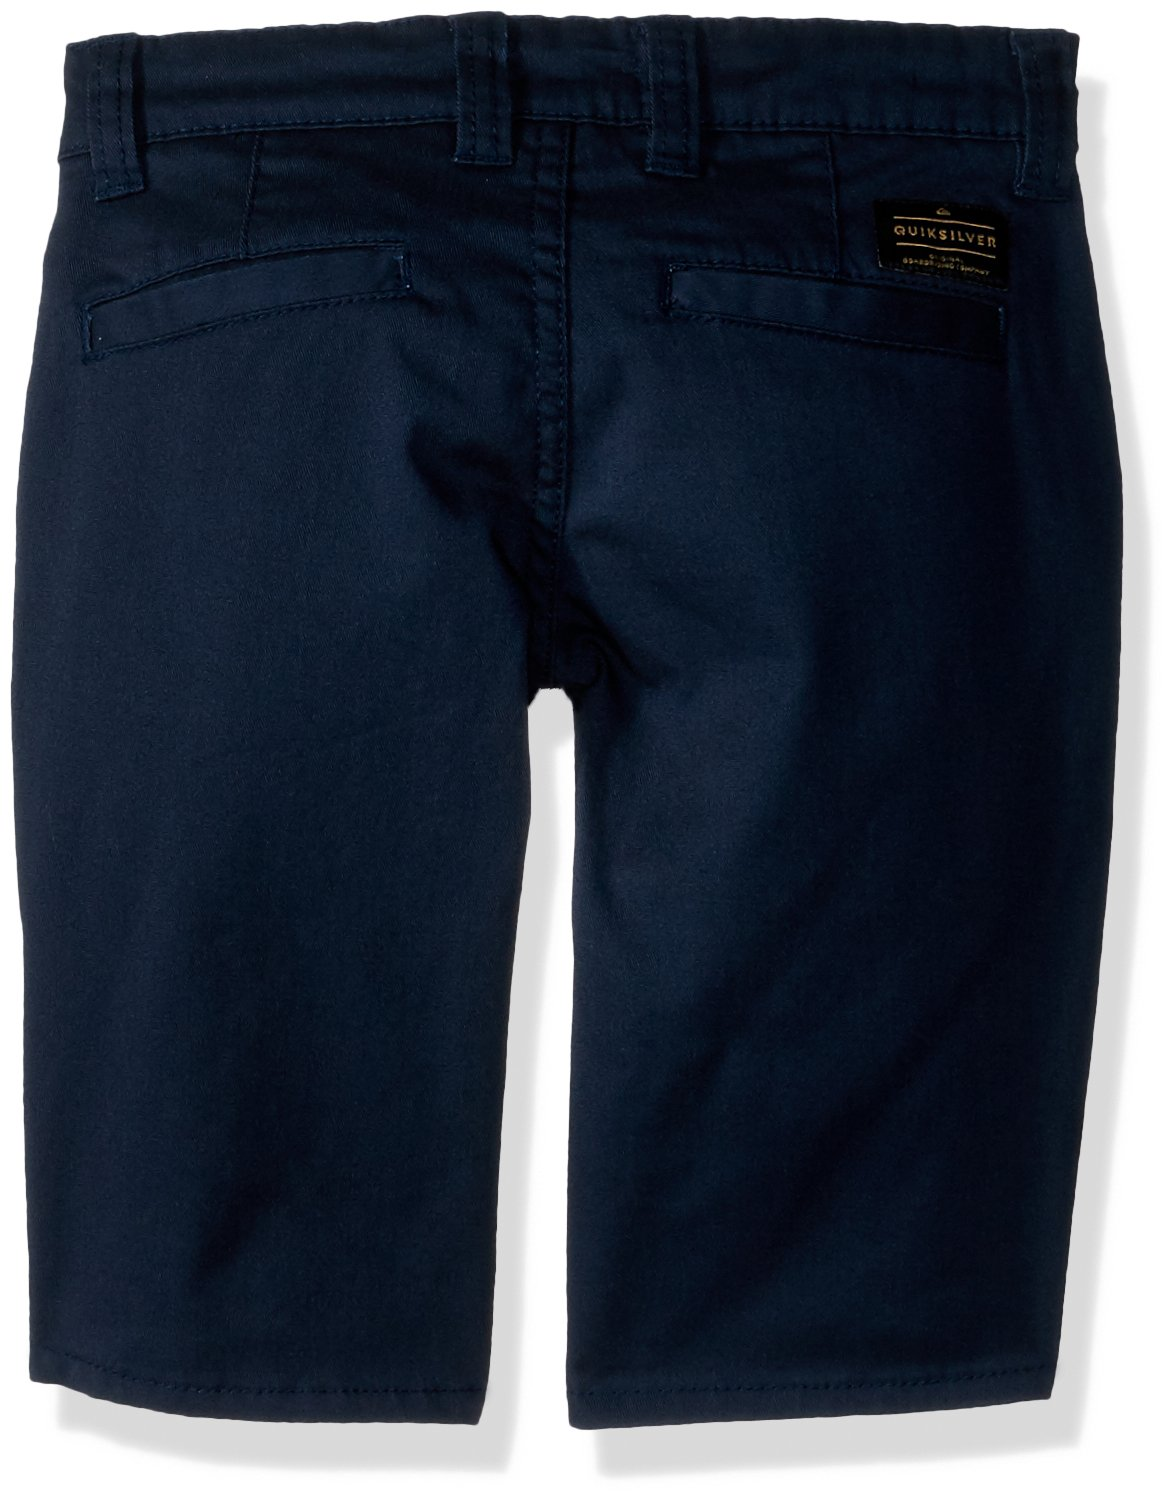 Quiksilver Boys' Little Kid Everyday Union Stretch Shorts, Navy Blazer, 4 by Quiksilver (Image #2)